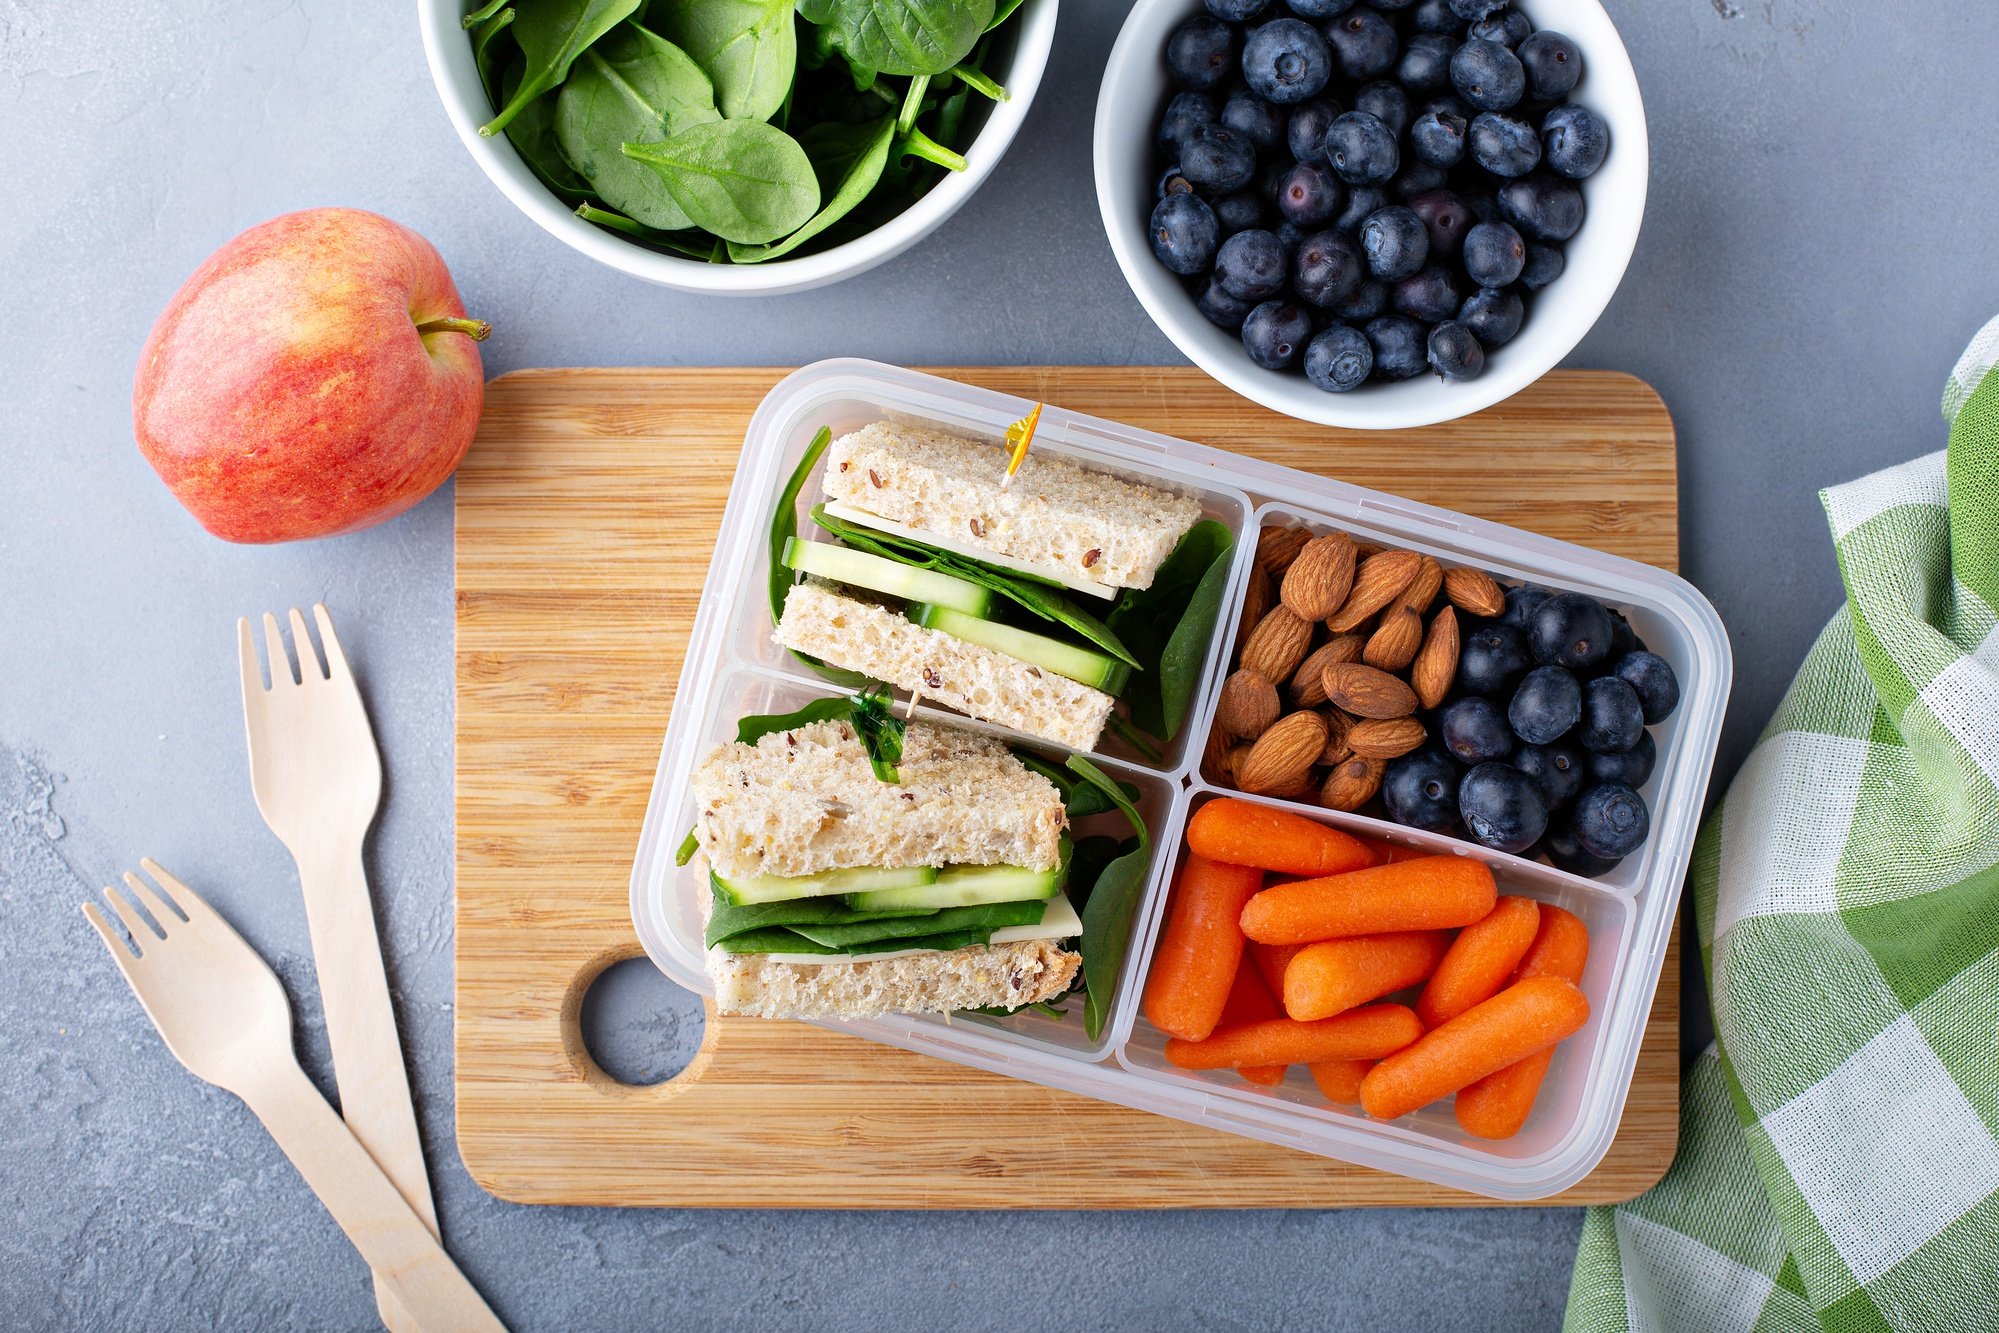 Pack healthy foods to eat during the journey